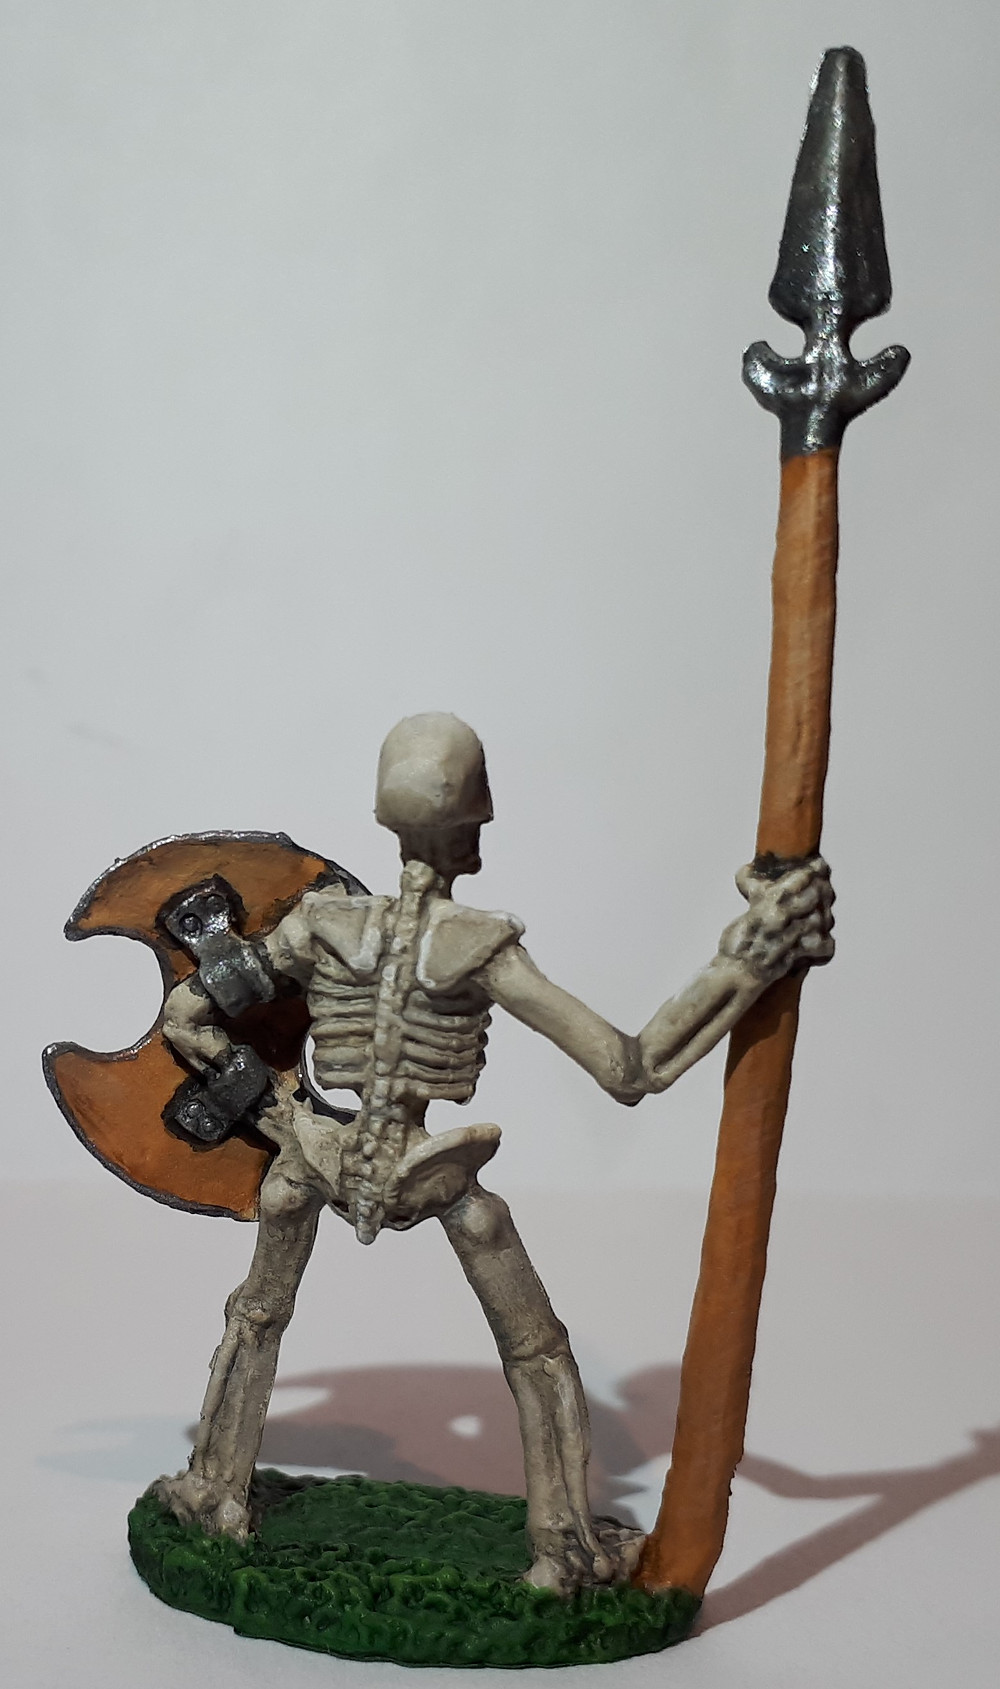 The back is far less interesting on this miniature